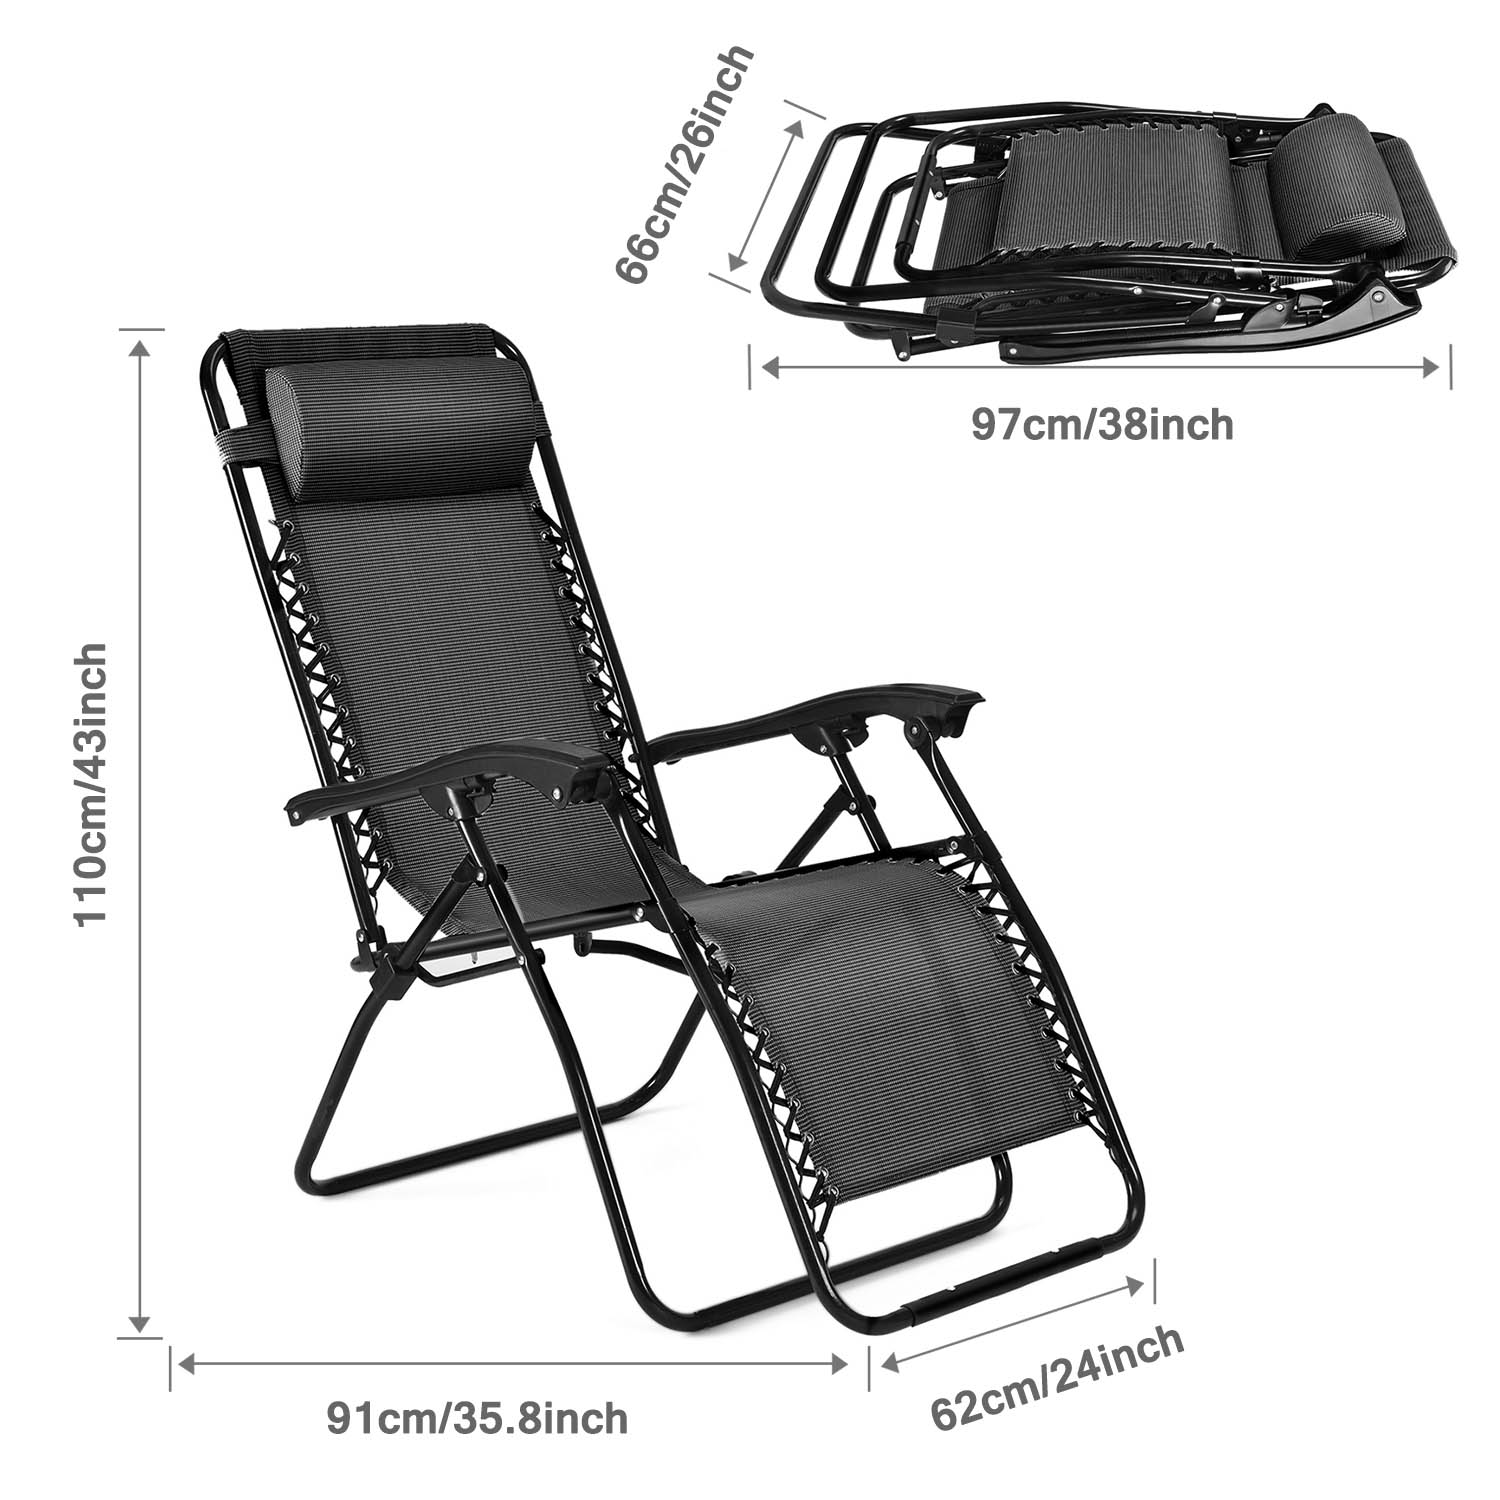 Zero Gravity Chair Outdoor Lounge Folding Reclining